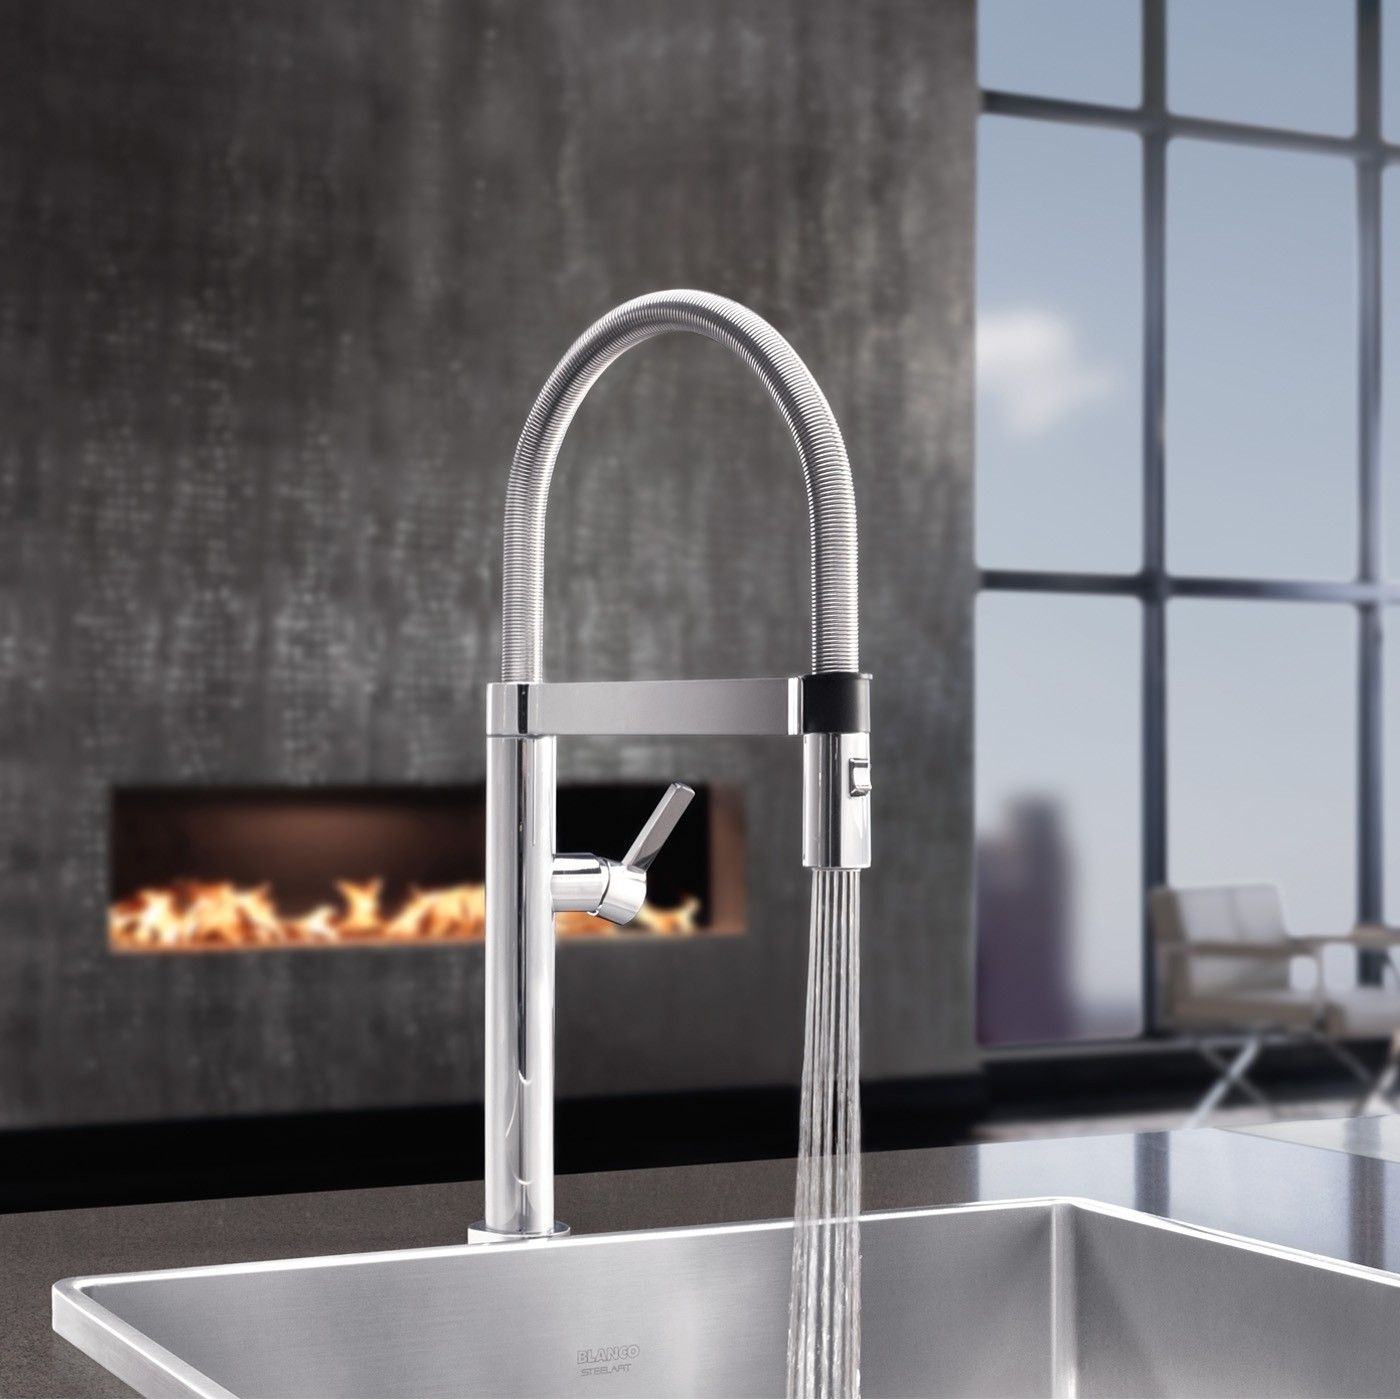 culina mini pull down kitchen faucet - Modern Kitchen Faucets